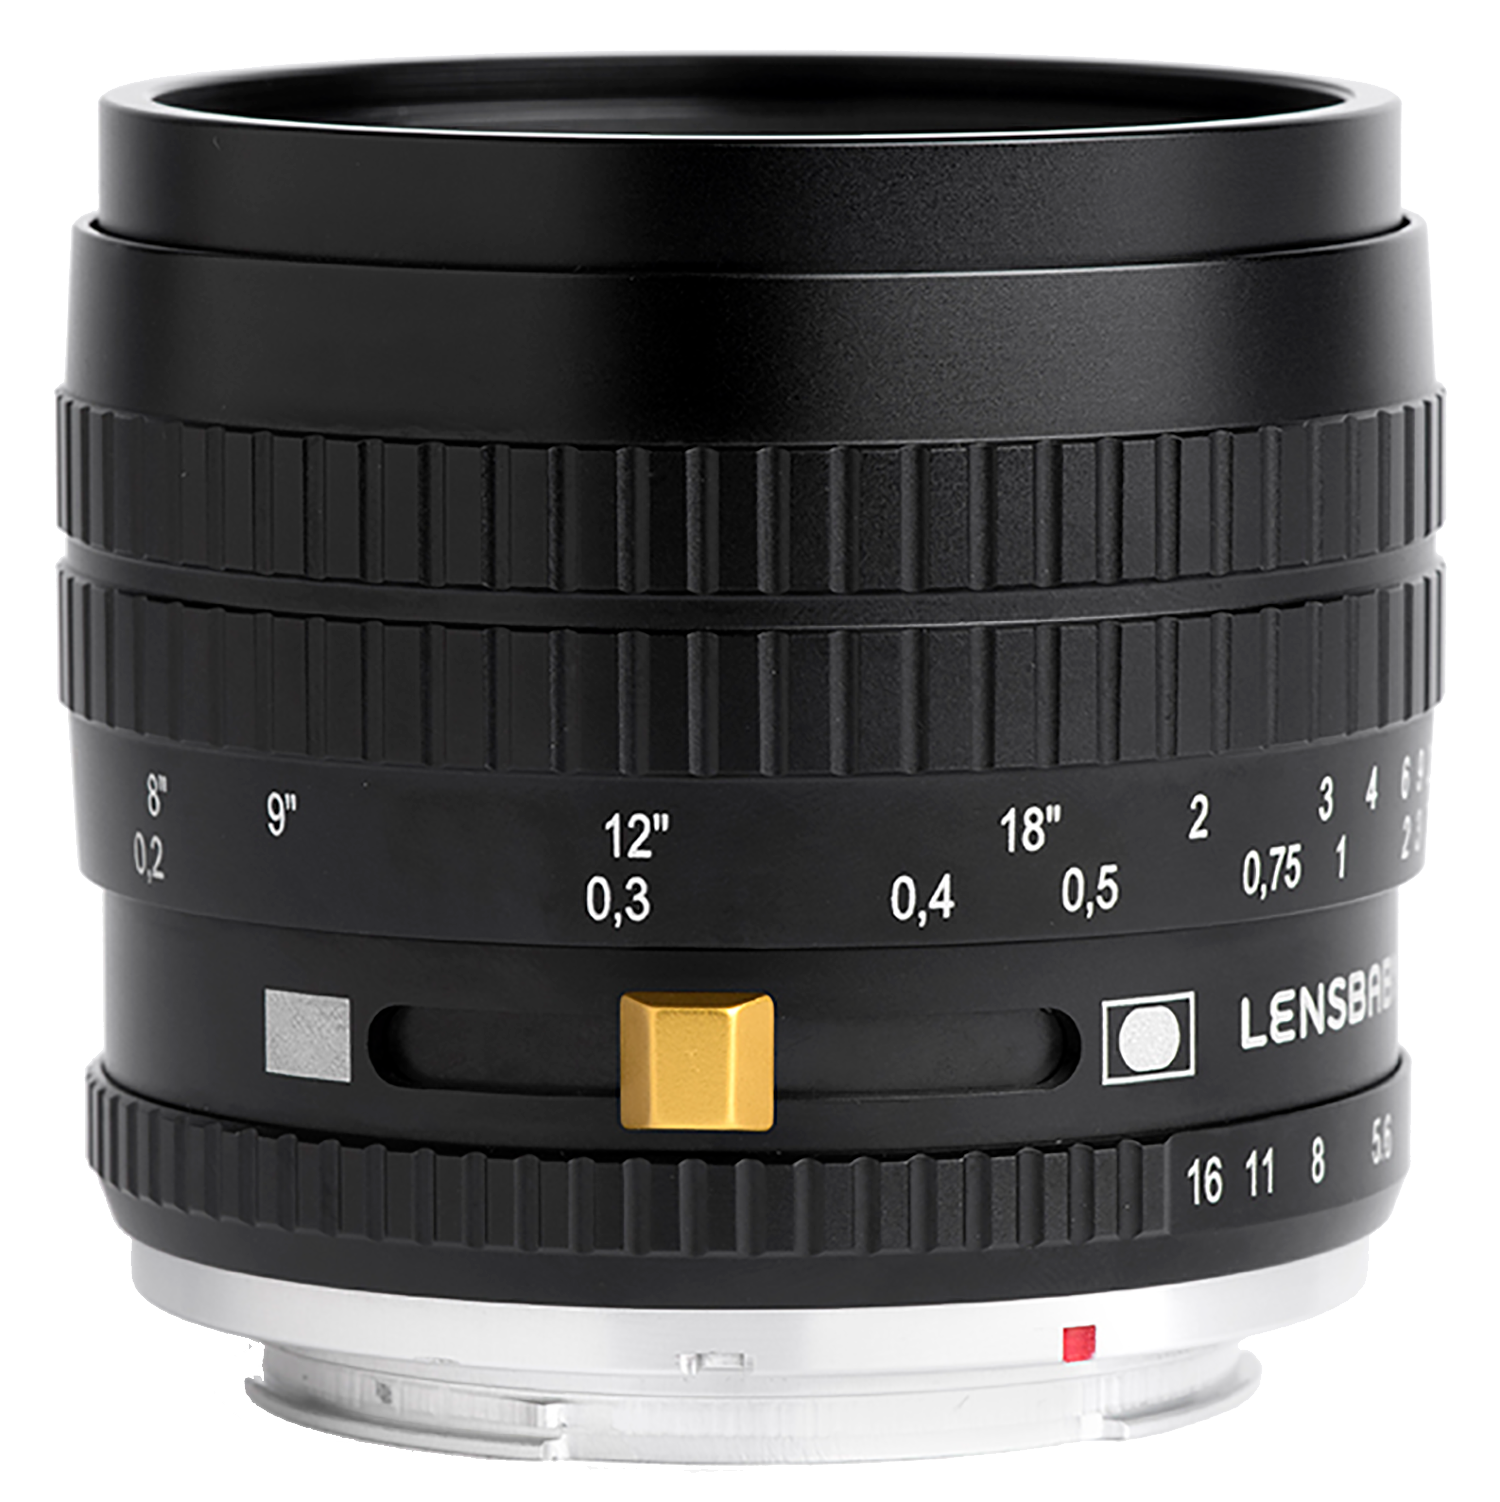 Lensbaby hire